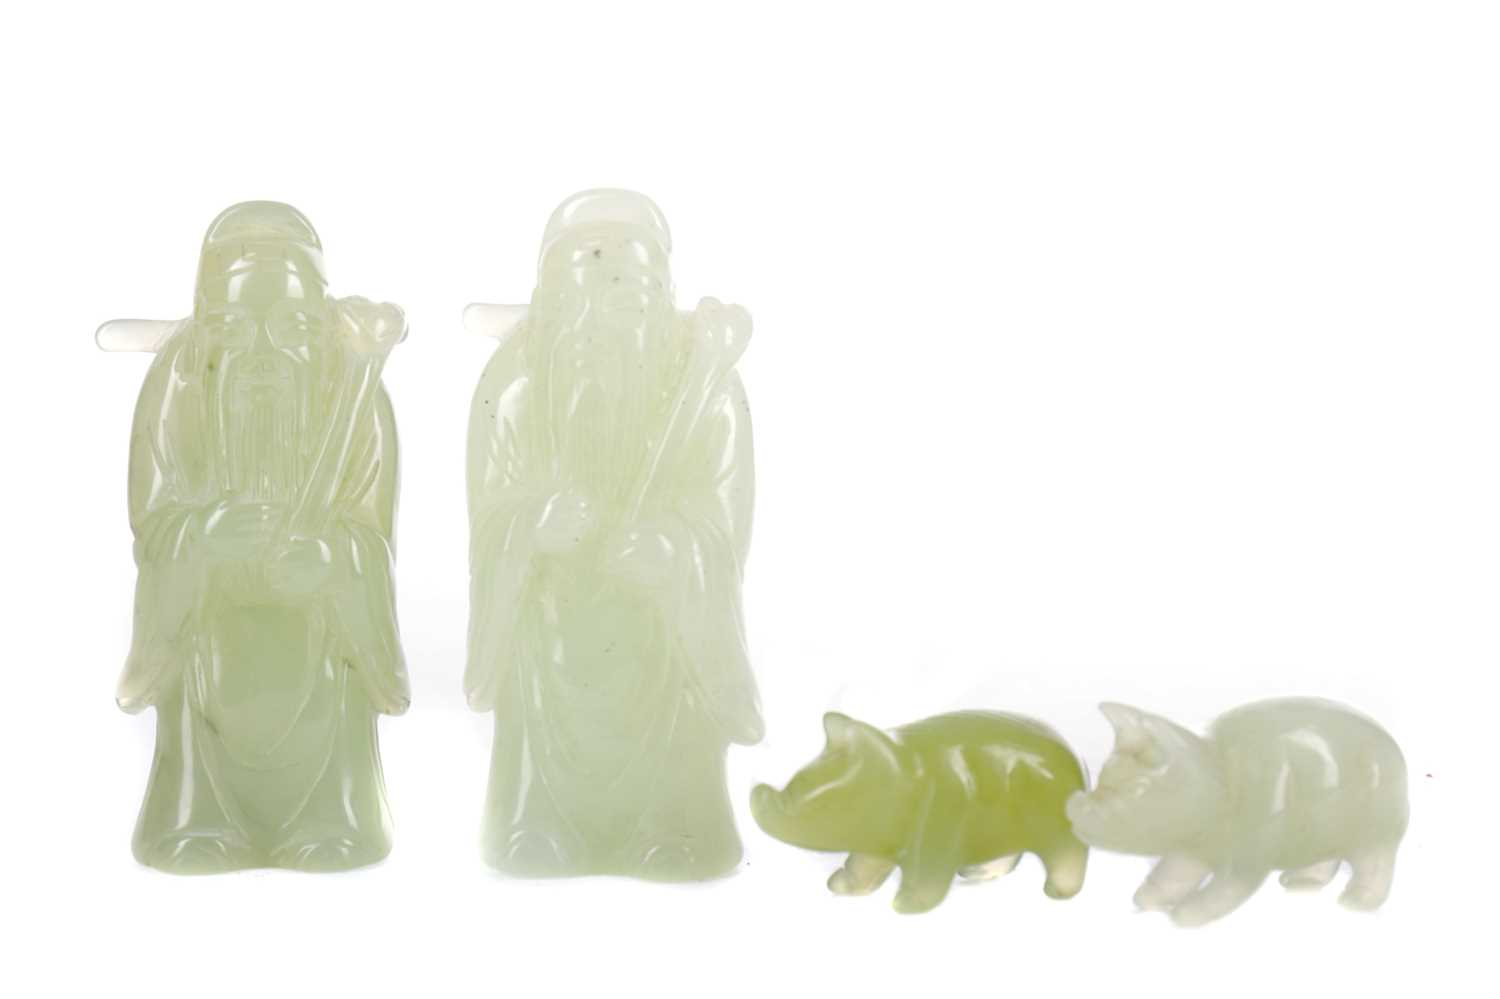 Lot 724 - A LOT OF TWO 20TH CENTURY CHINESE GREEN HARDSTONE FIGURES AND TWO PIGS